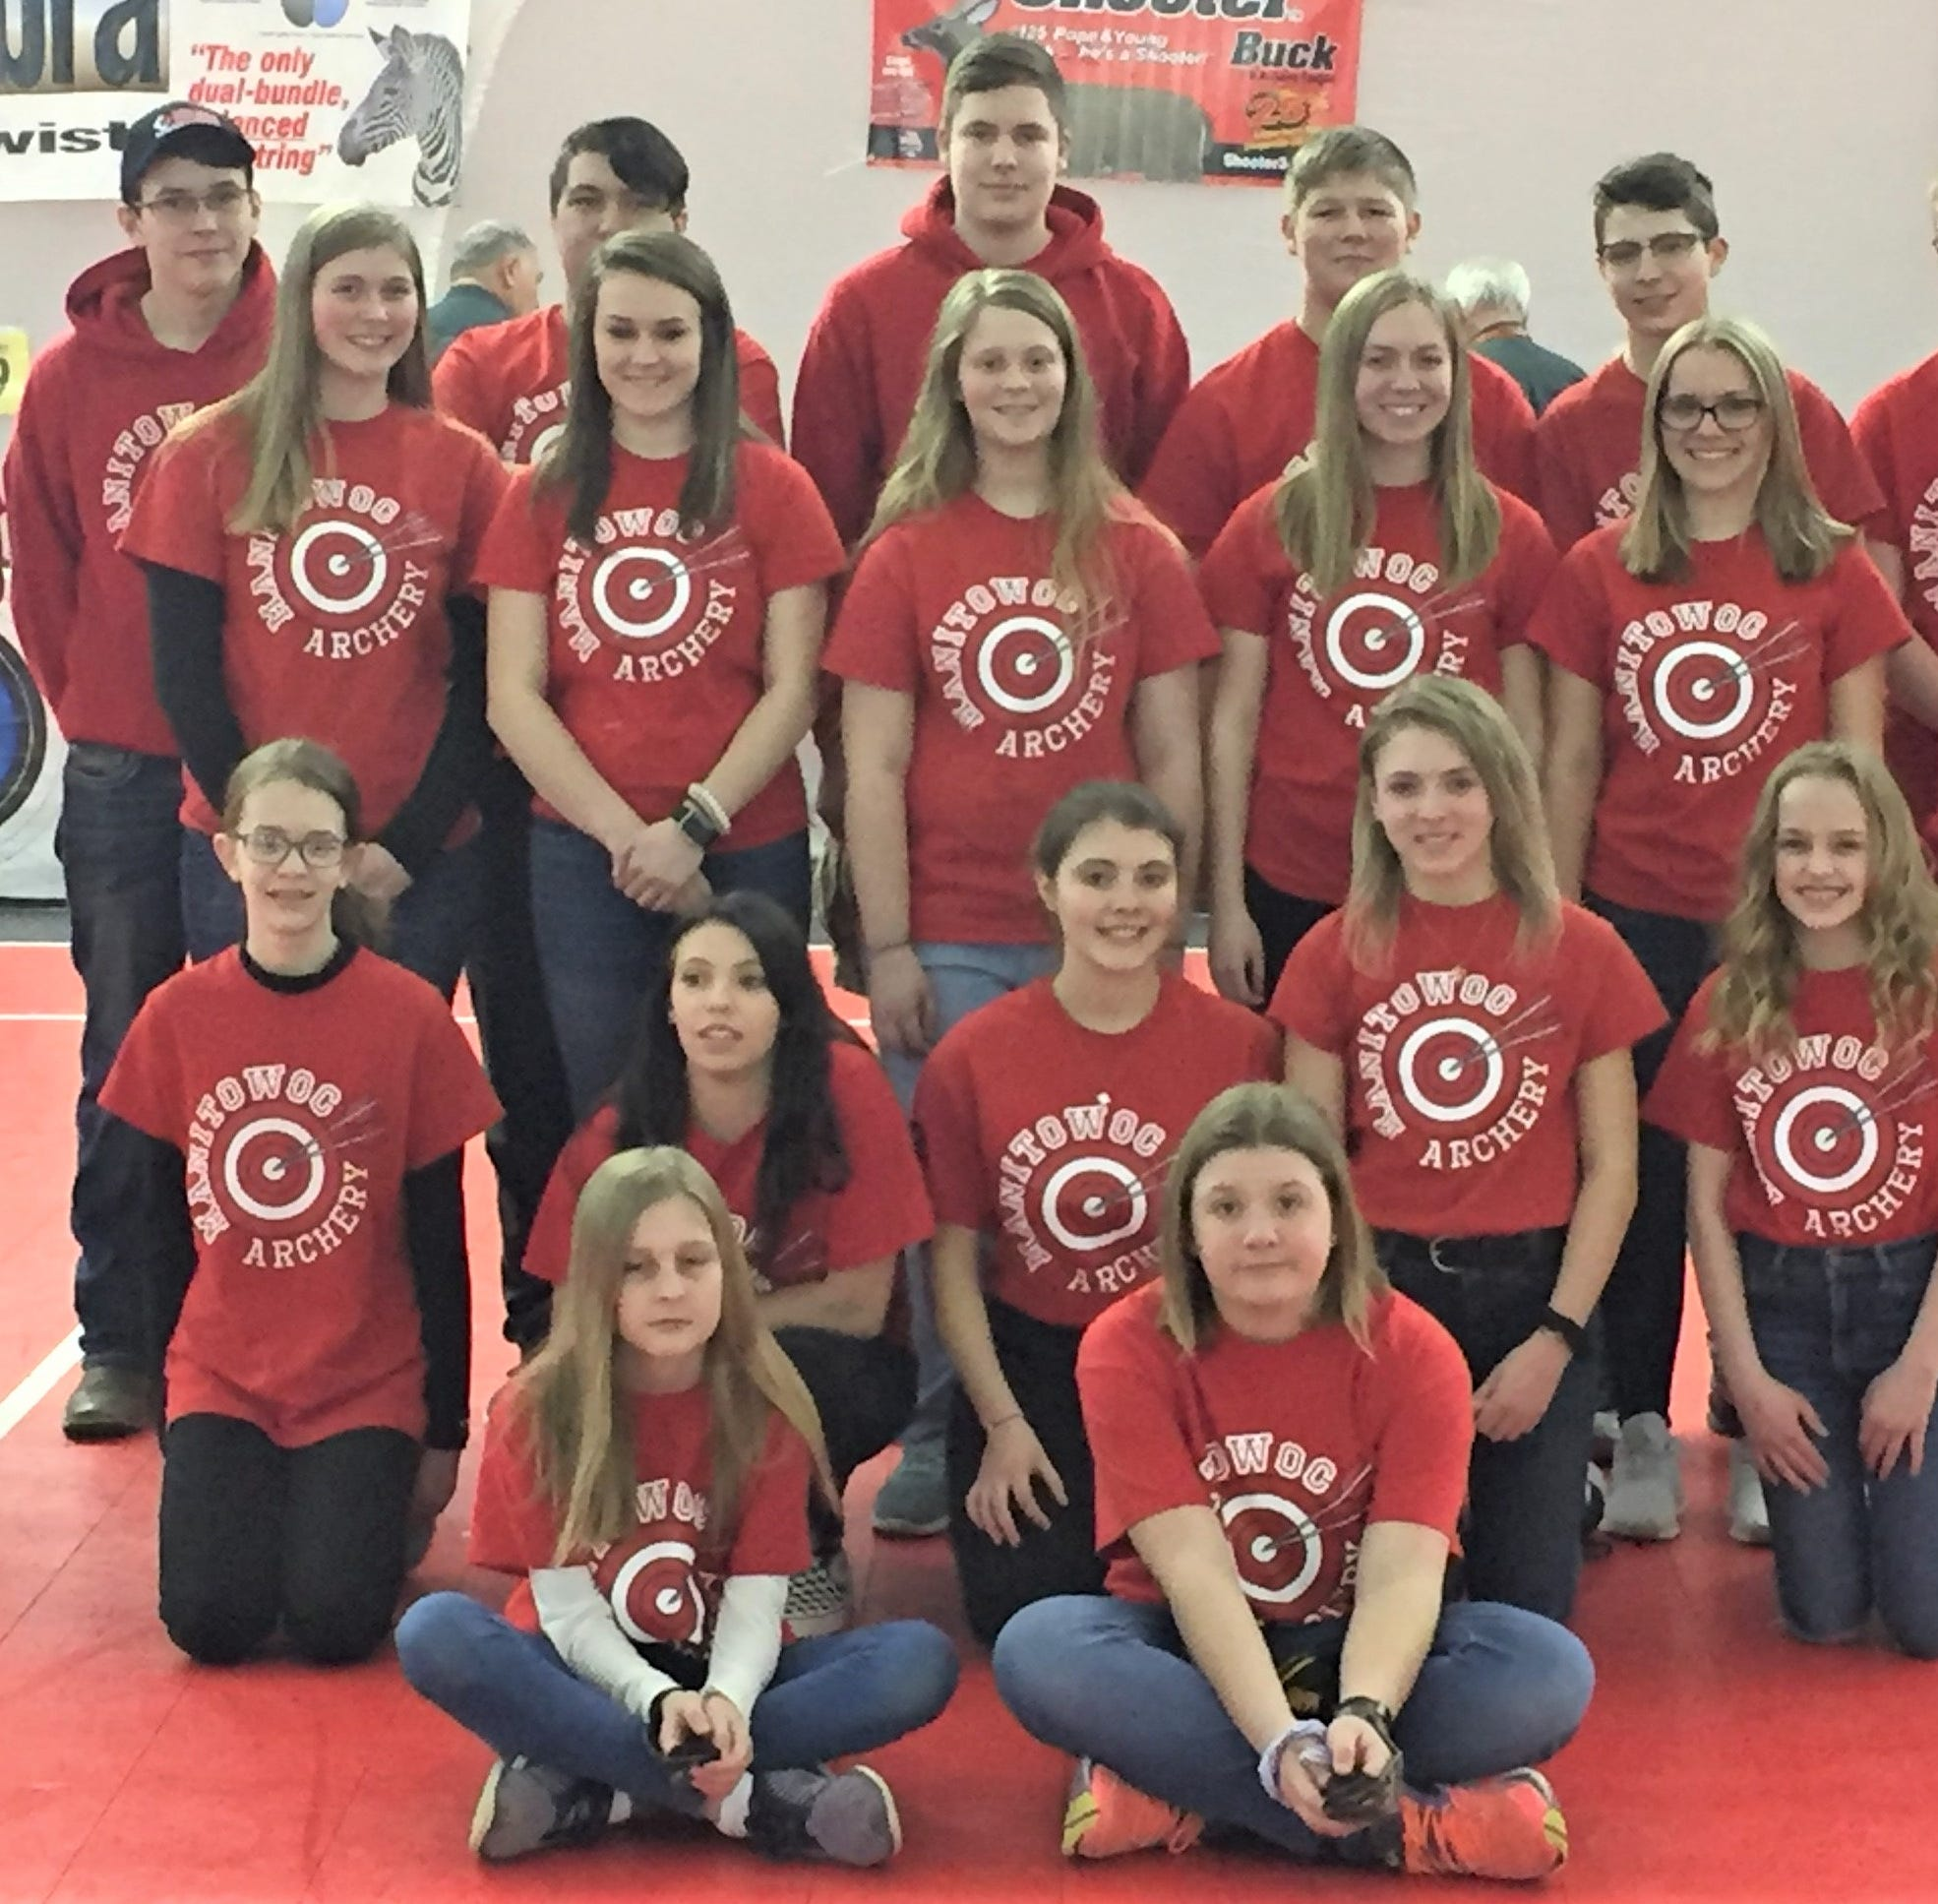 Manitowoc outdoors news: Local students score big at Archery in the Schools tournament